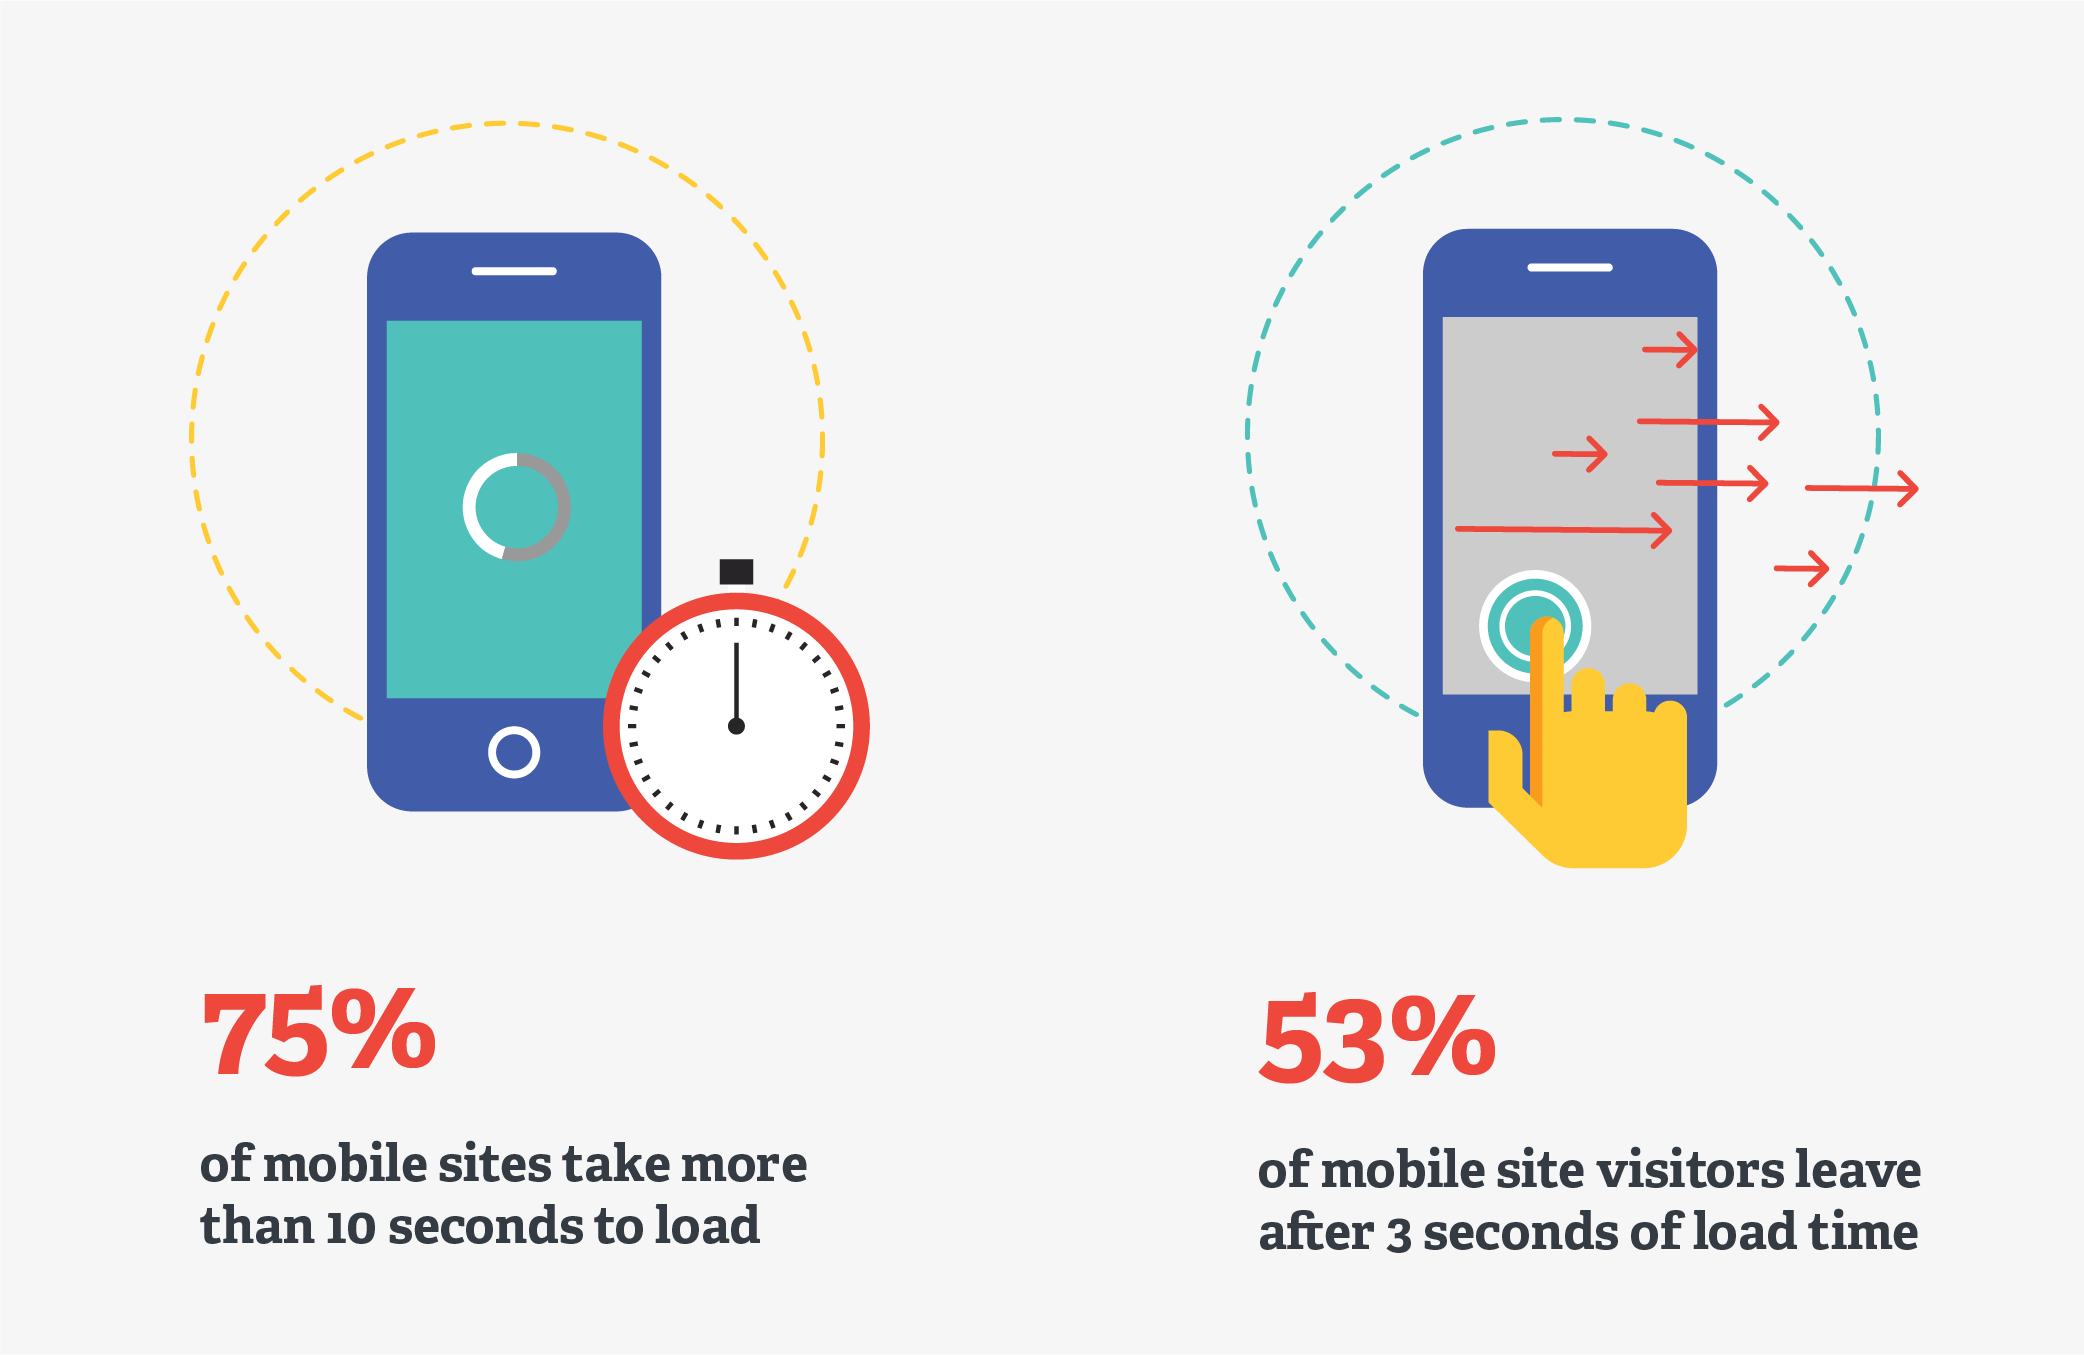 75% of websites take more than 10 seconds to load